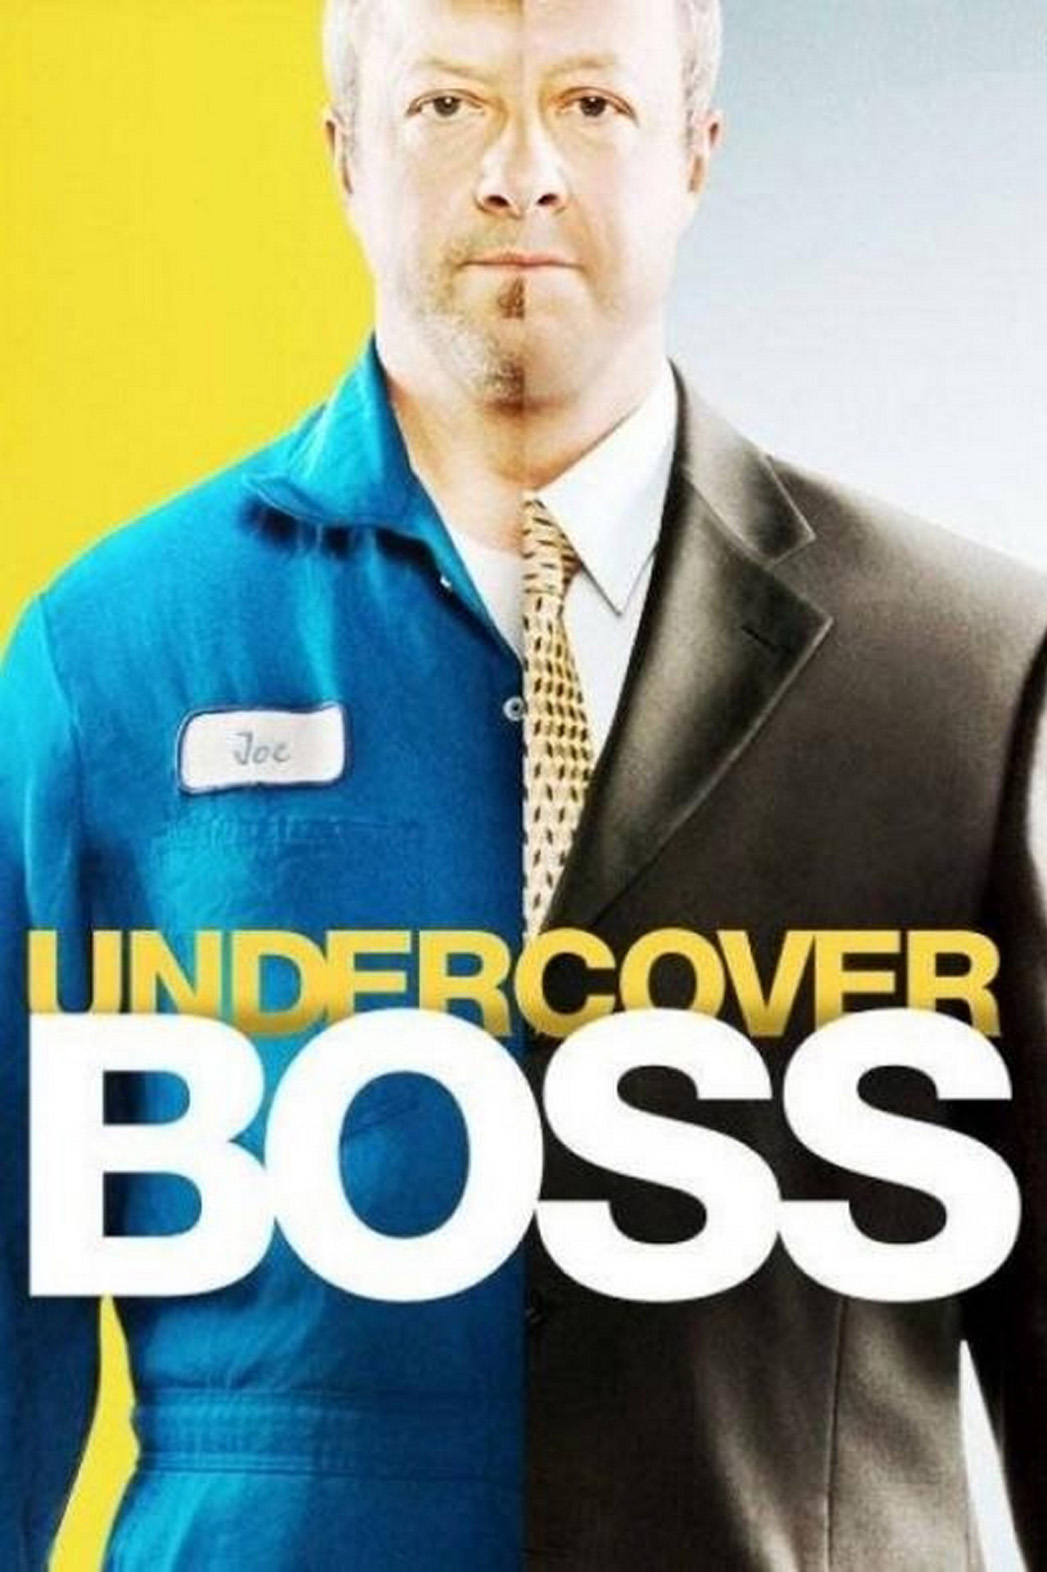 Undercover Boss Poster - P 2013